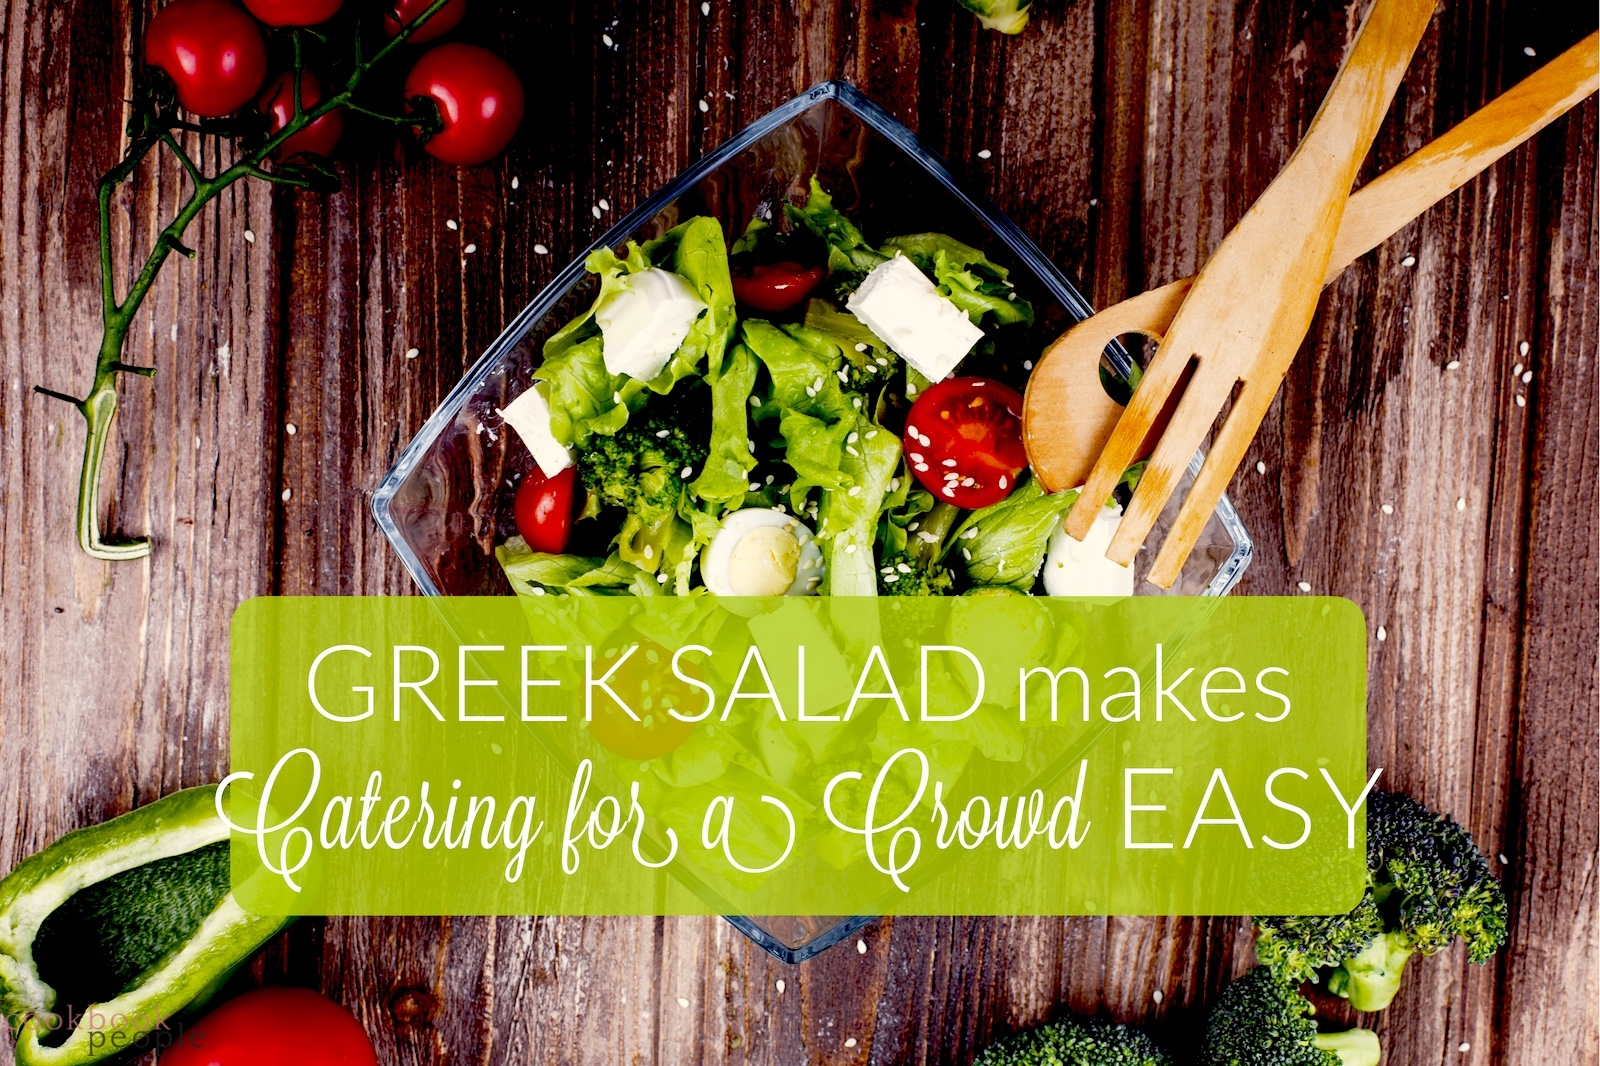 Greek salad on wooden table with title: Greek Salad Makes Catering for a Crowd Easy